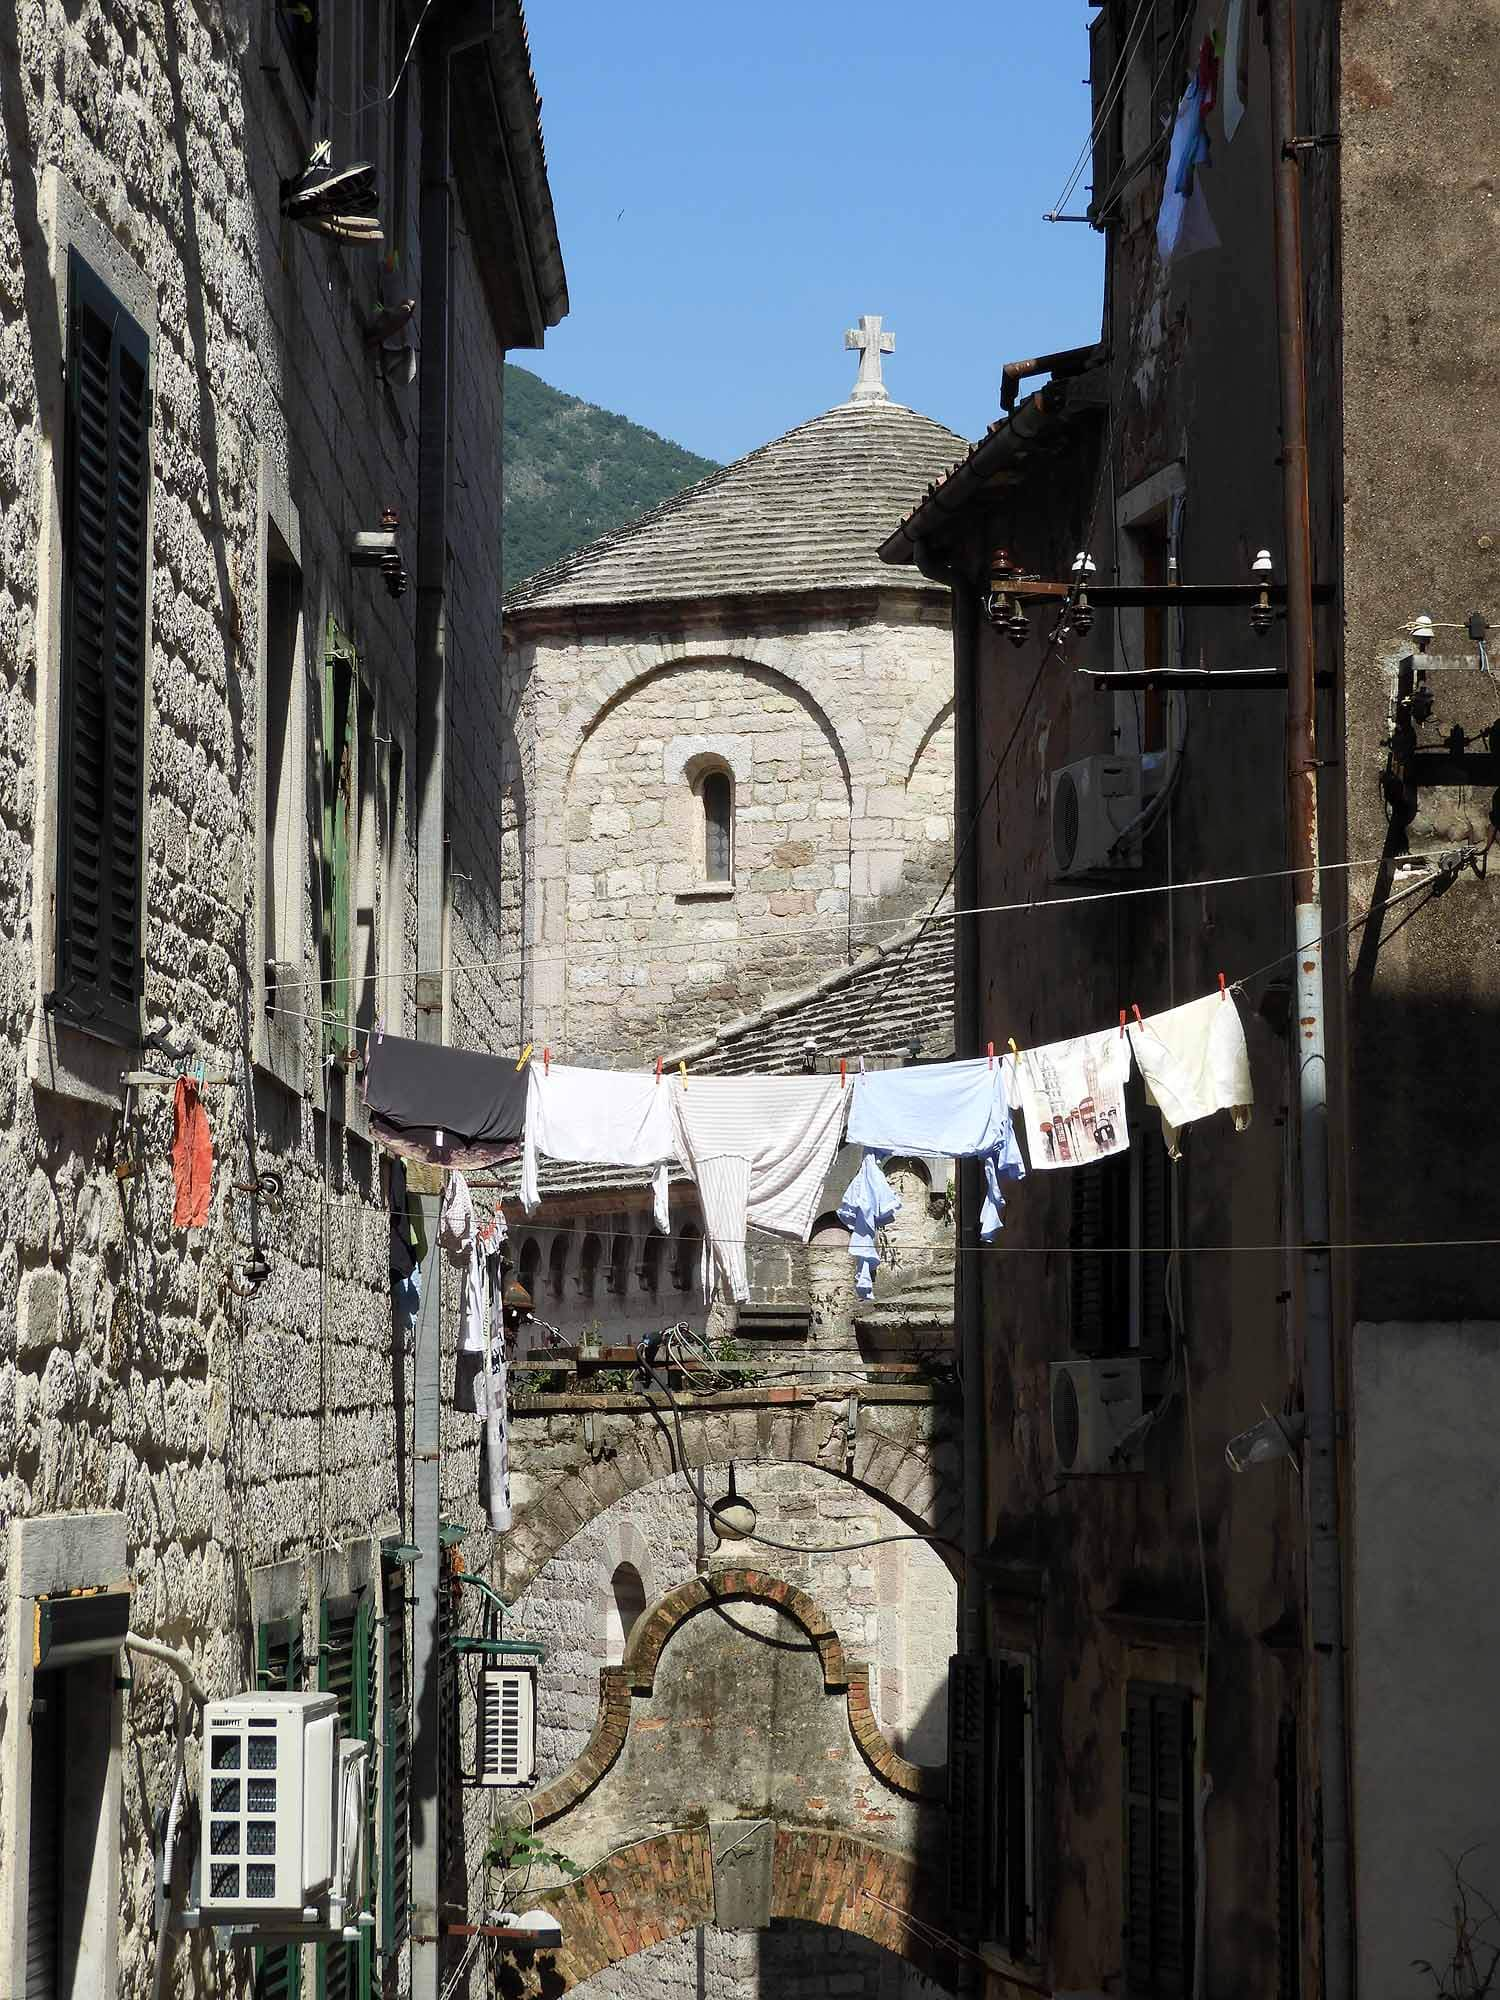 montenegro-kotor-town-street-laundry-clothes-line-alley.jpg